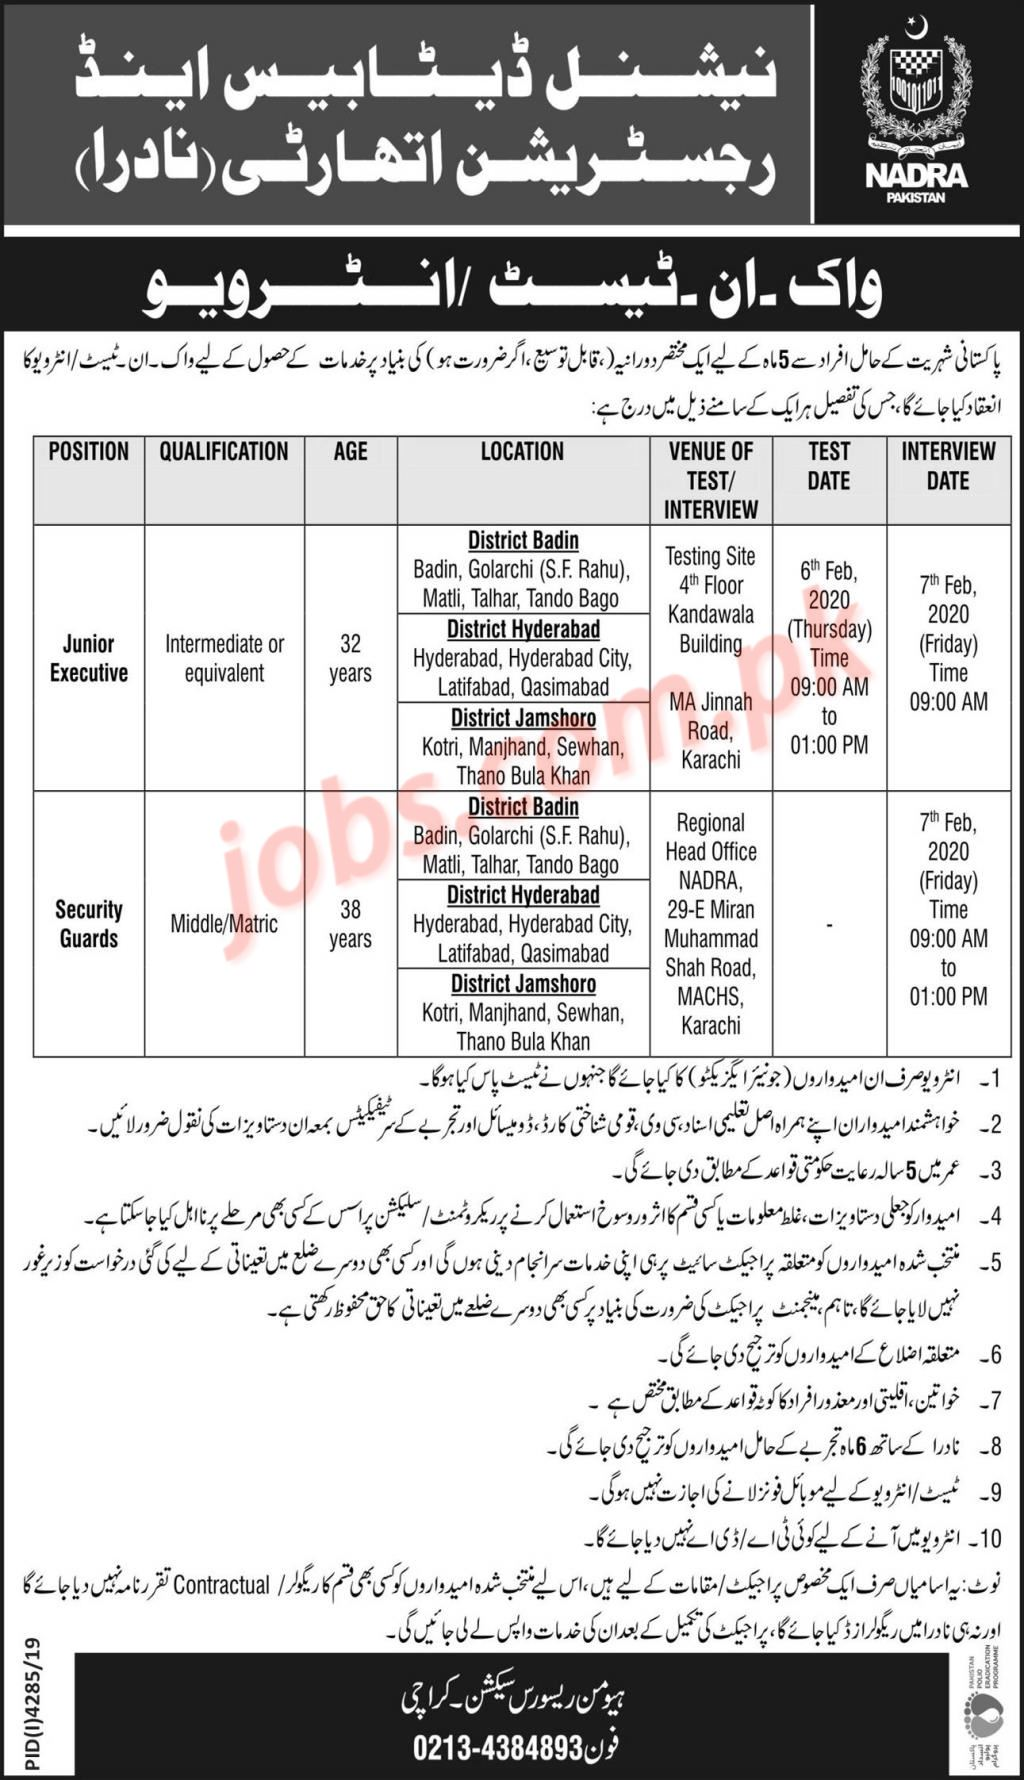 nadra-exp Job Application Form Paec on part time, free generic, blank generic,